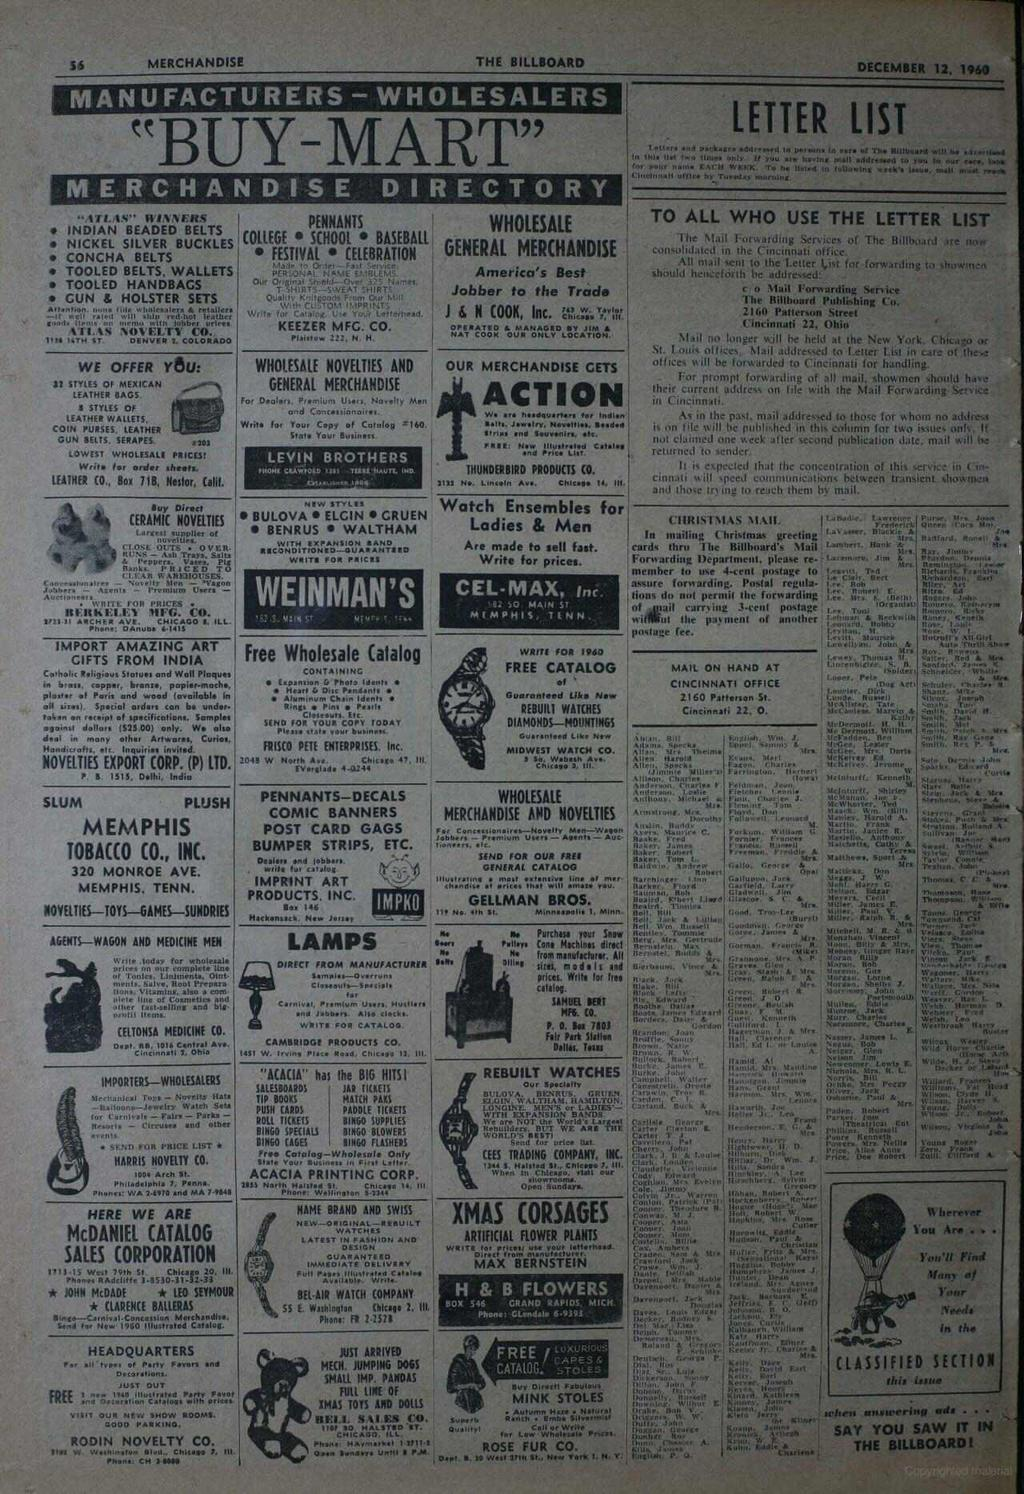 "56 MERCHANDISE THE BILLBOARD MANUFACTURERS - WHOLESALERS ""BUY MART"" MERCHANDISE DIRECTORY LETTER DECEMBER 12, 1960 LIST í..11n end oaekagea ddrevaed la brie. In core of The Billboard will be dyeml.c.l In Ma Ilel two Ilnie only."